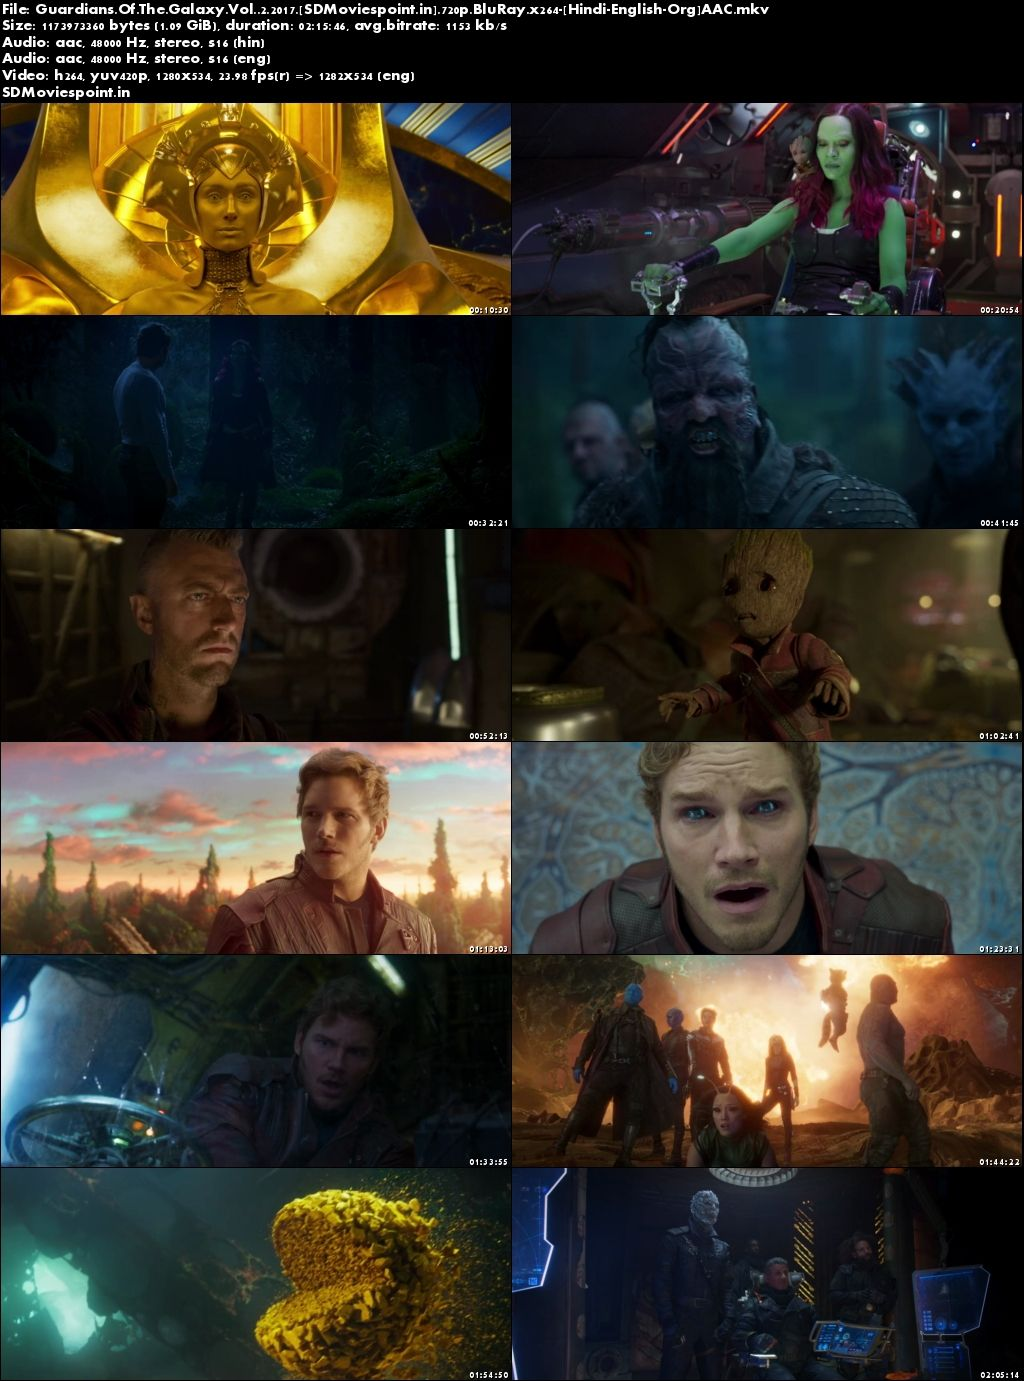 Screen Shots Guardians Of The Galaxy Vol.2 (2017) Full Movie Download In Hindi Dubbed 1080p